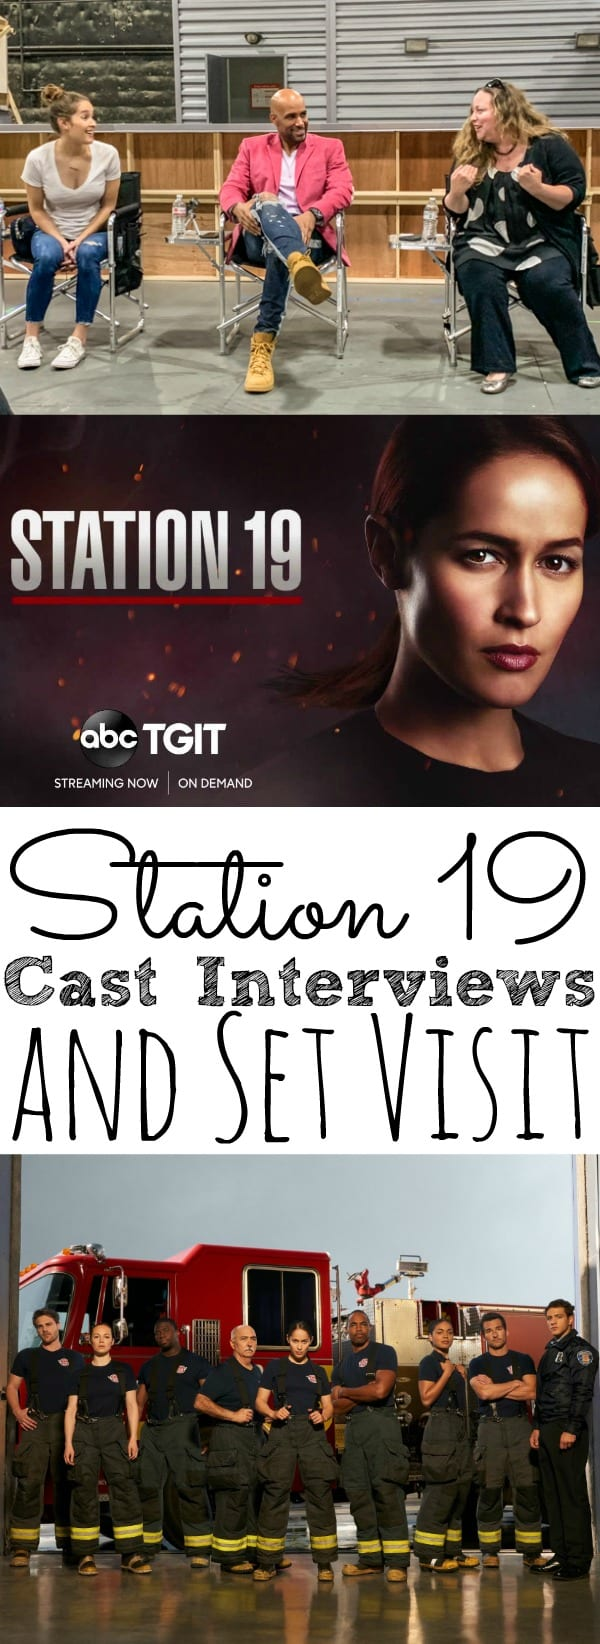 Television Set Visit of Station 19